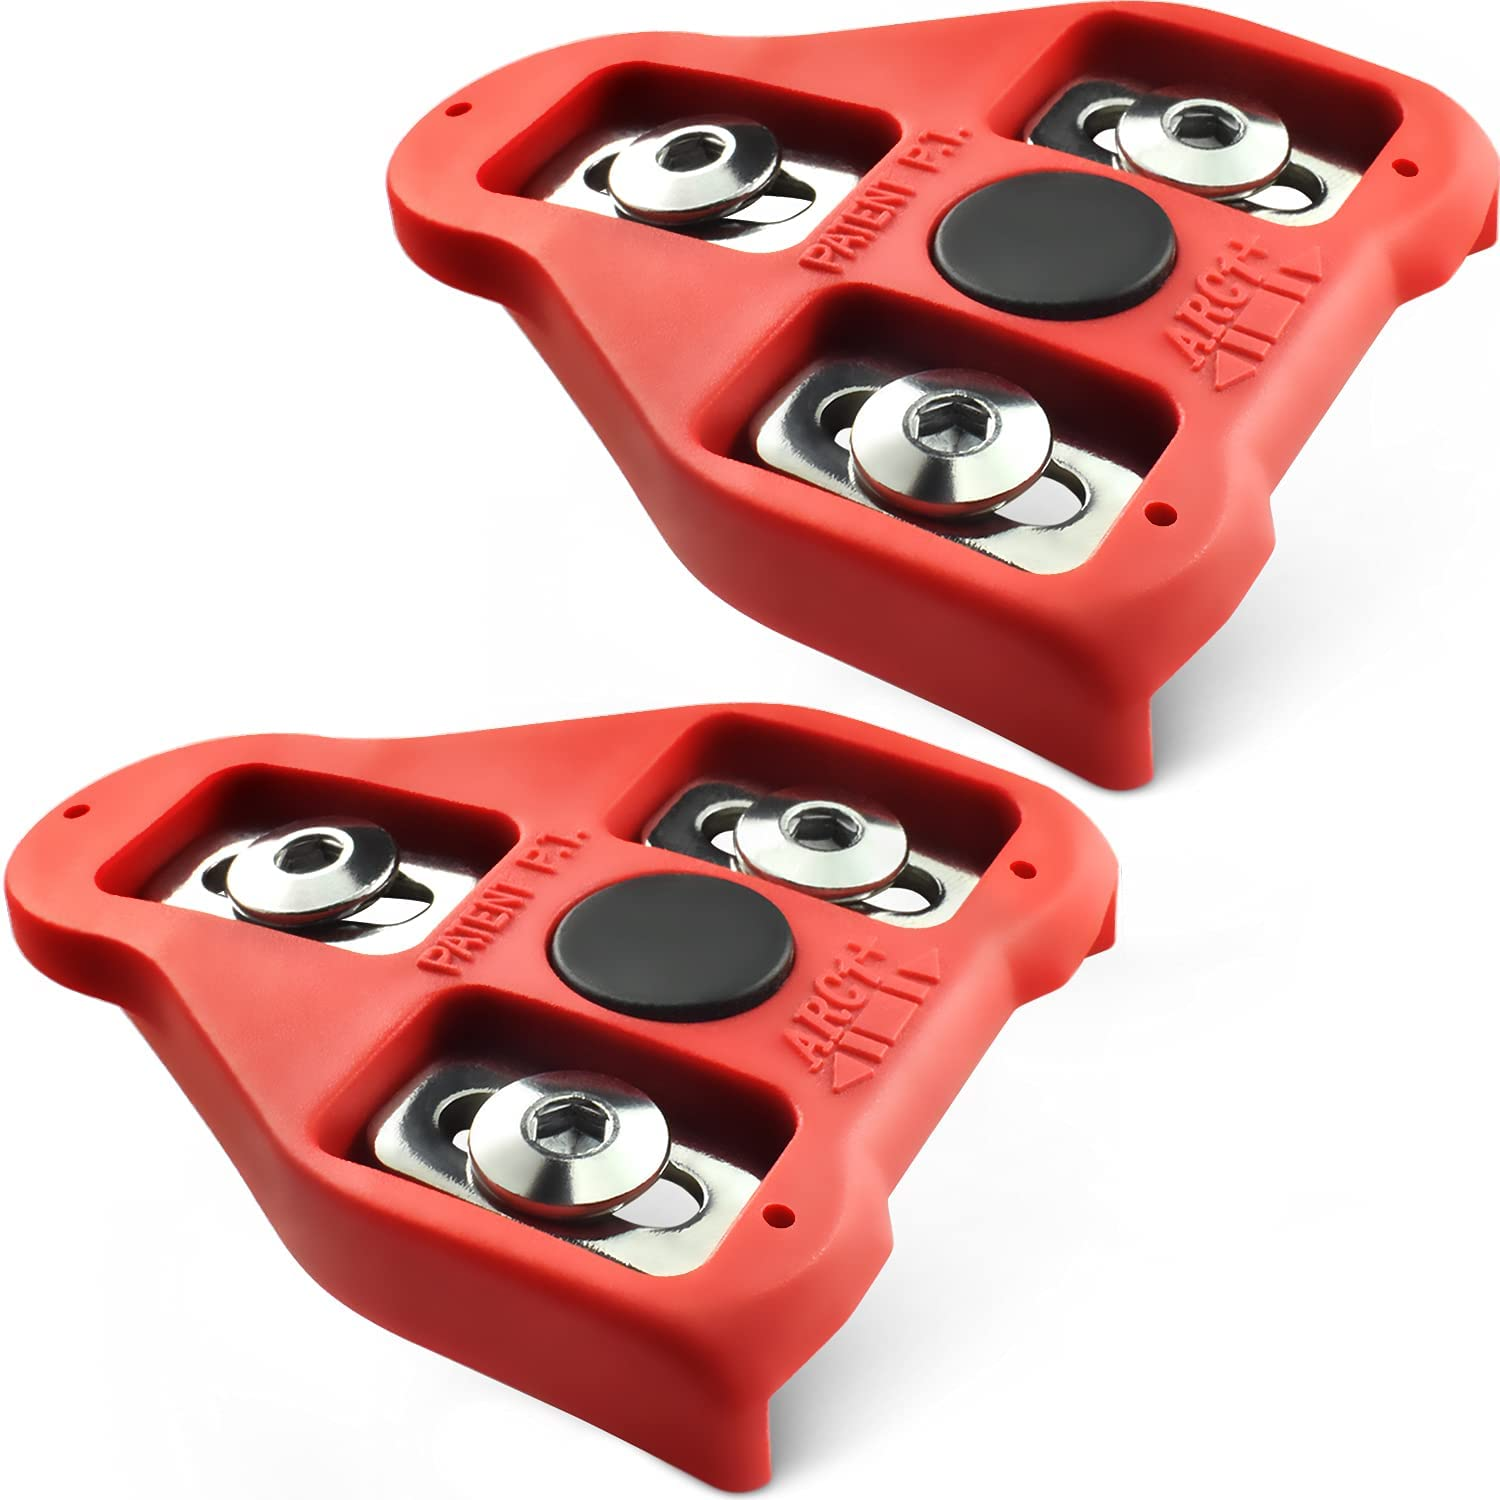 New VP Road Bike LOOK Delta Compatible 9 Degree Float Pedal Cleats Red